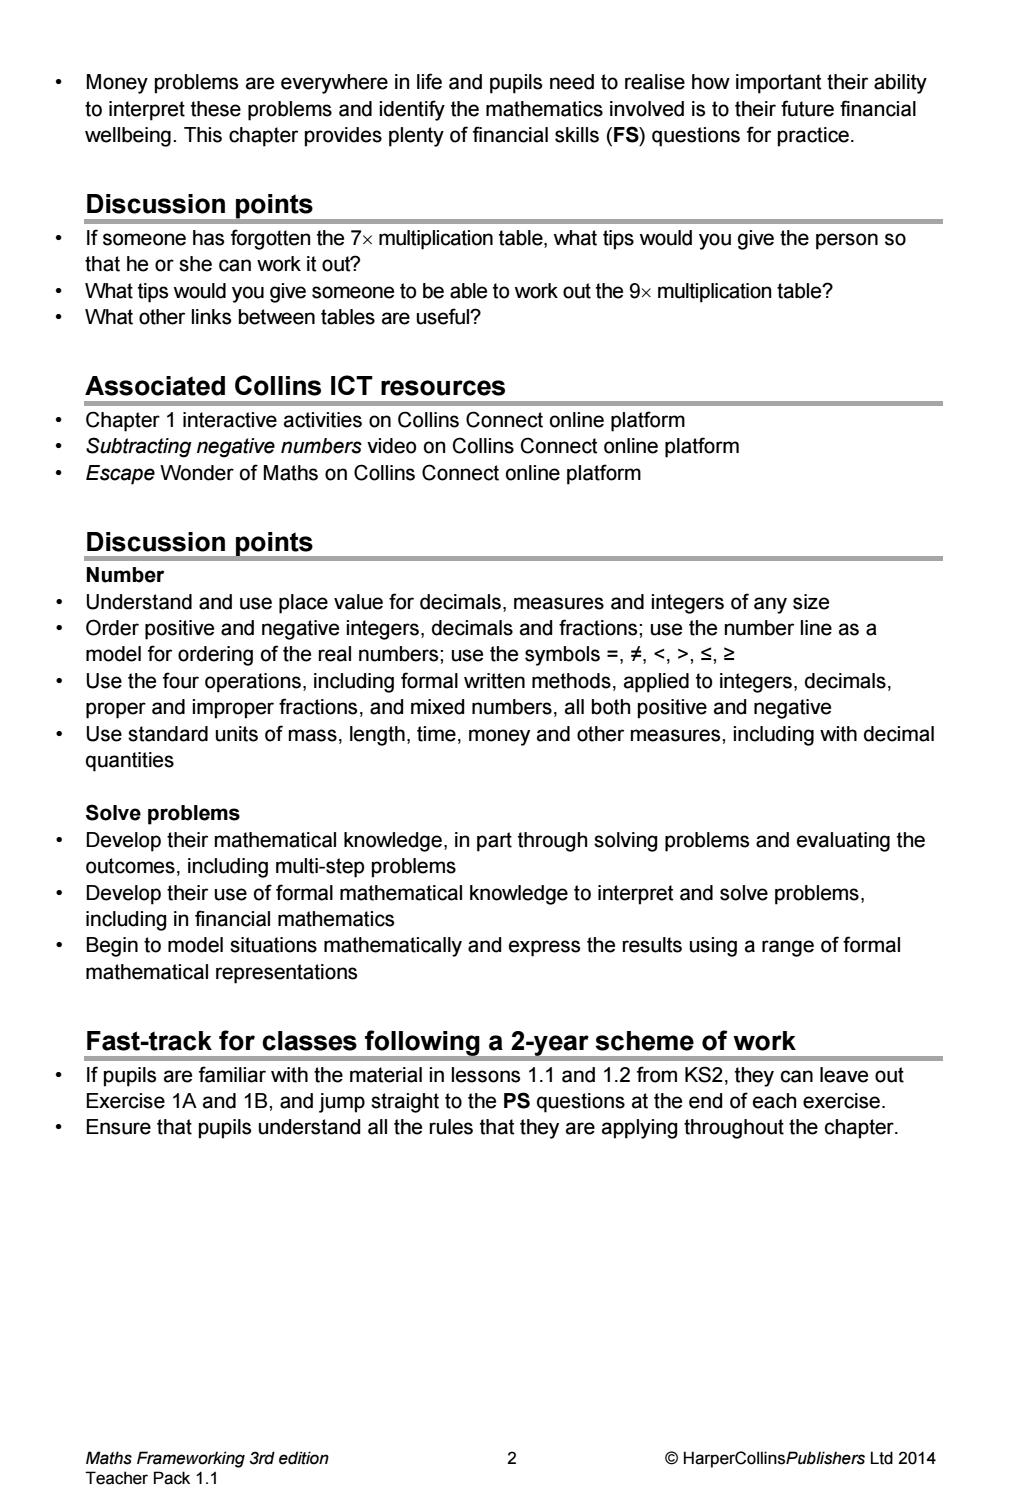 Funky Maths Work Problems Vignette - Math Worksheets - modopol.com